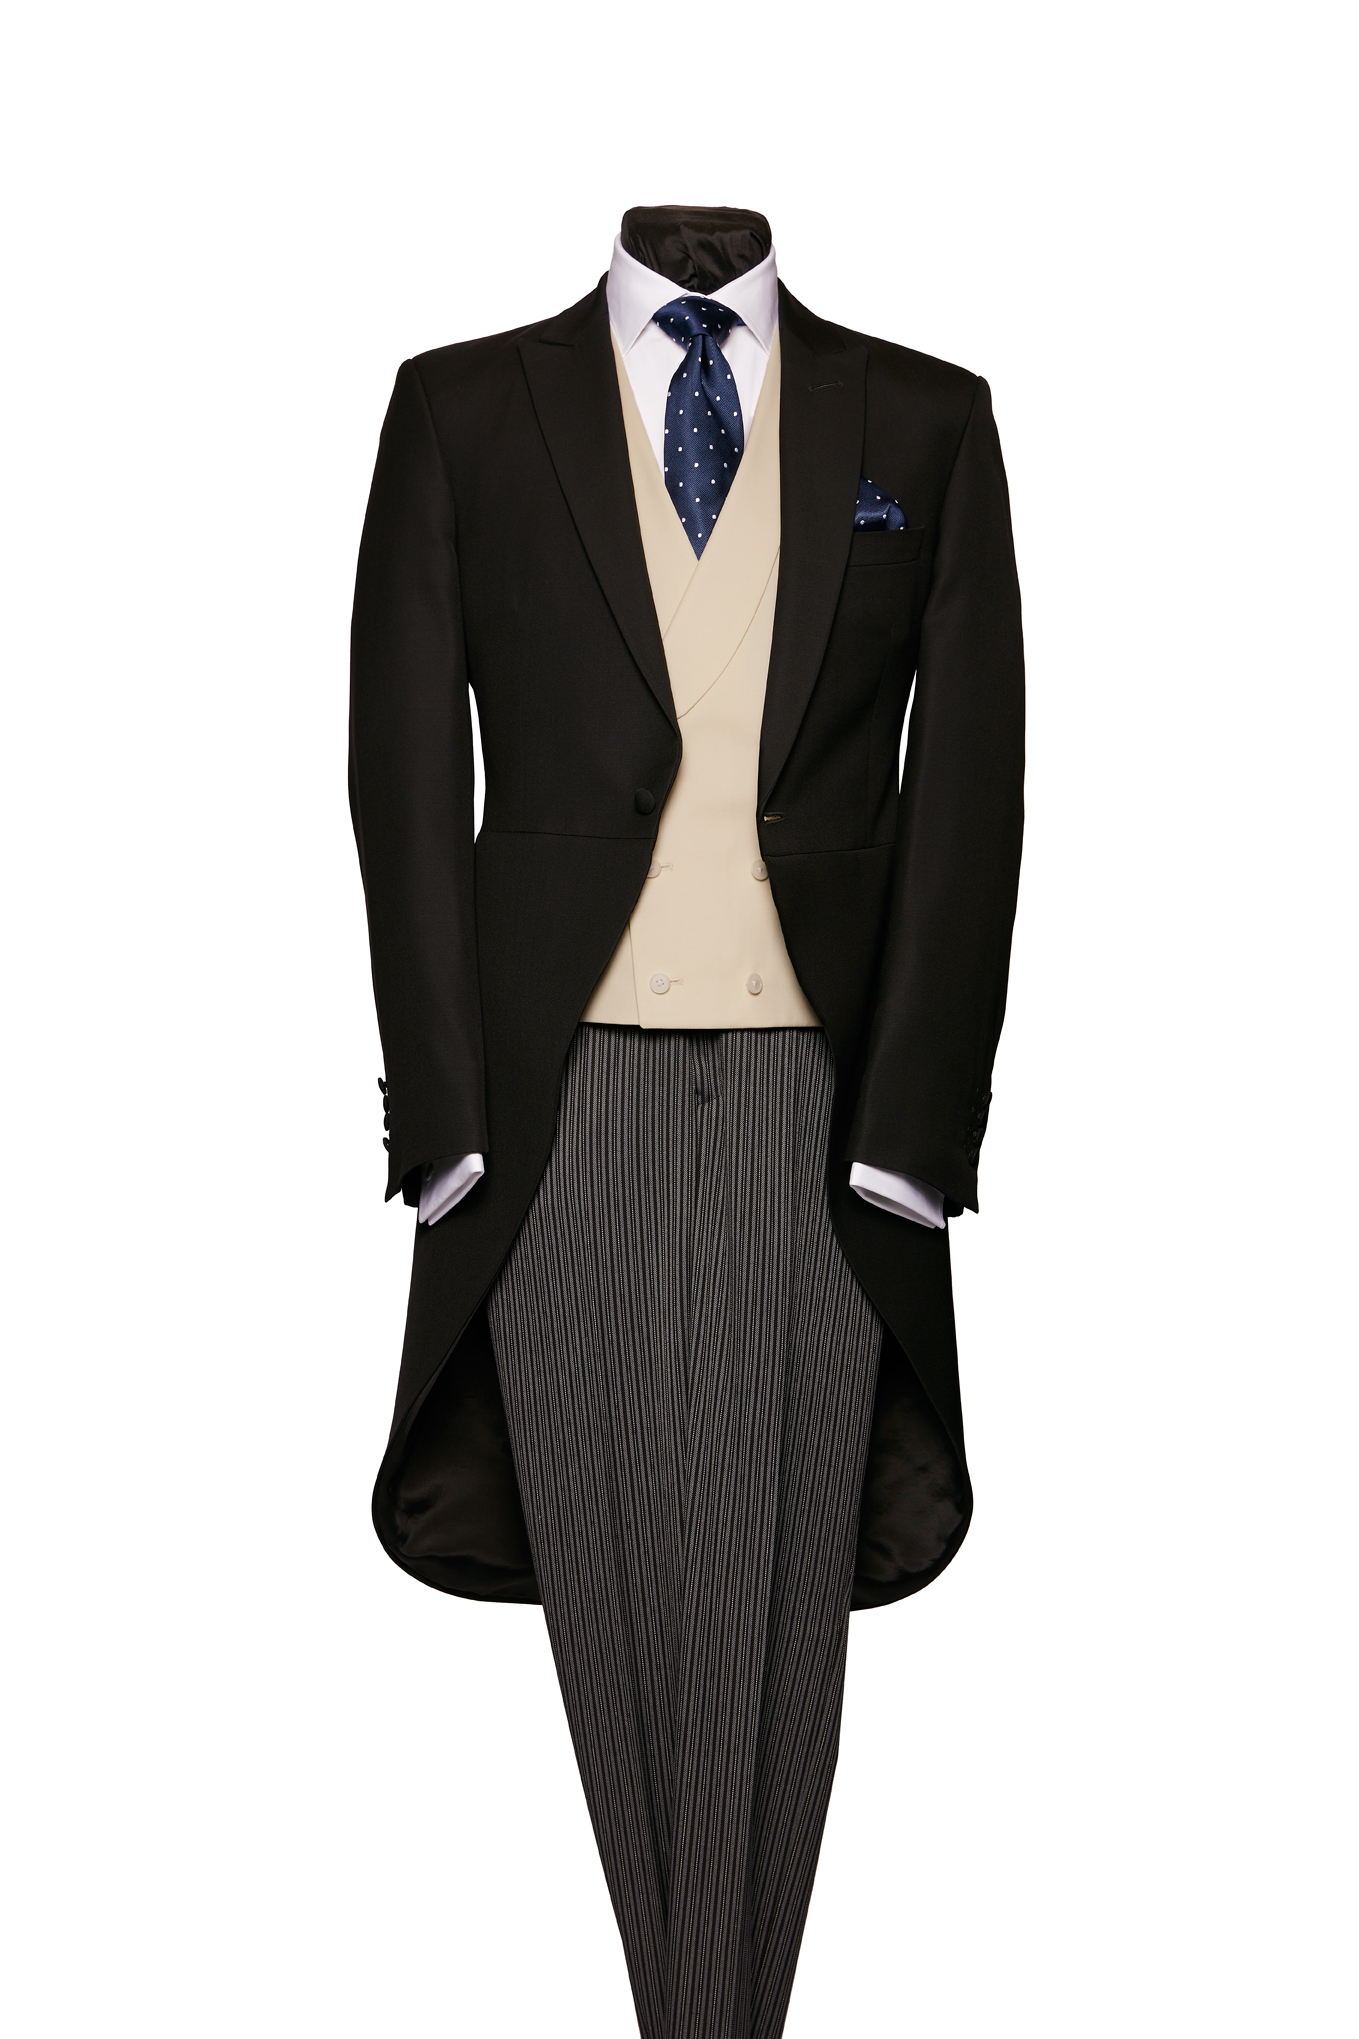 Plain black light weight morning coat with grey stripe trousers